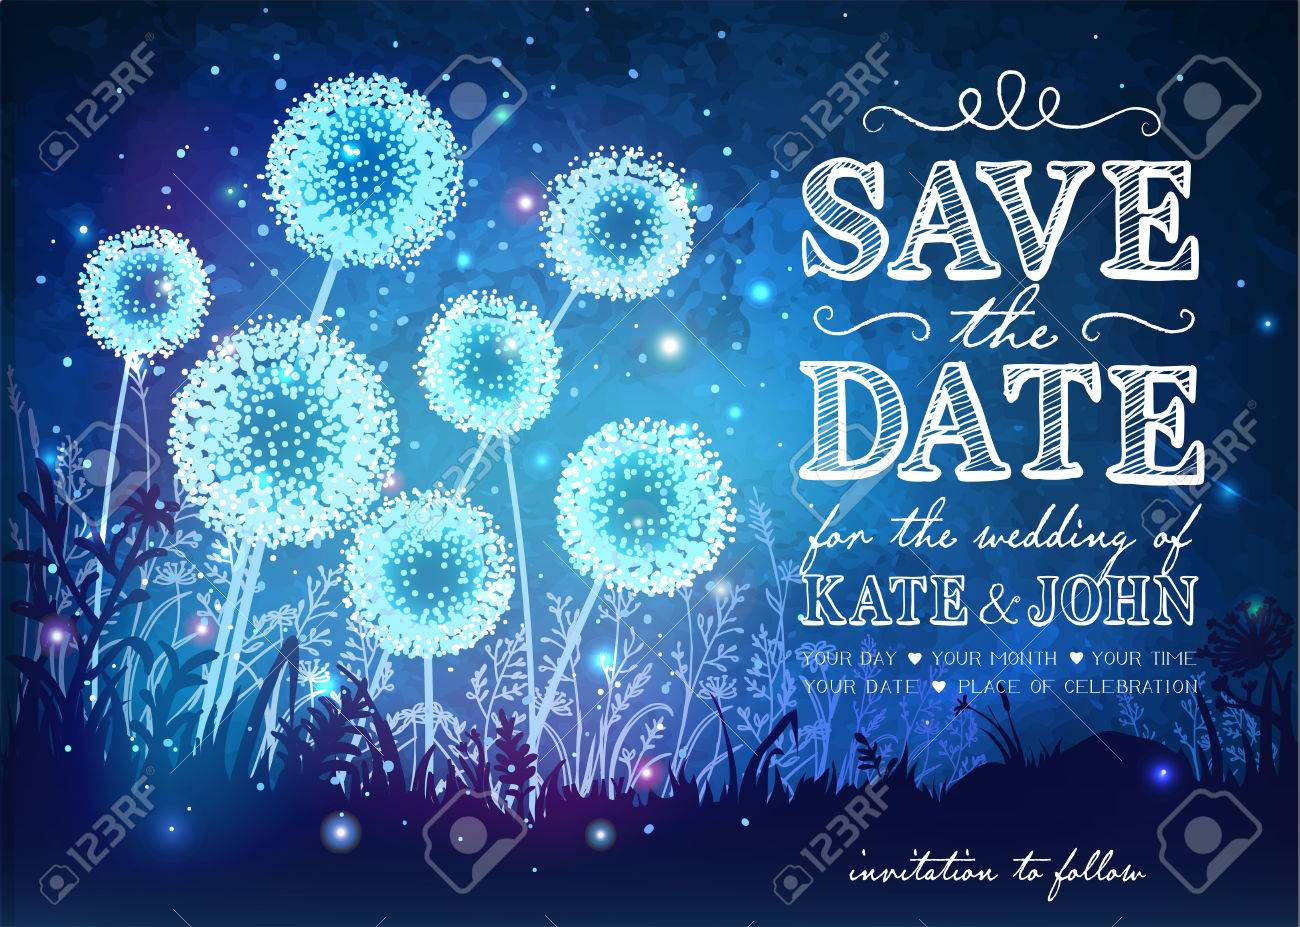 Amazing dandelions with magical lights of fireflies at night sky background. Inspiration card for wedding, date, birthday, holiday or garden party. Save the Date - 56833596